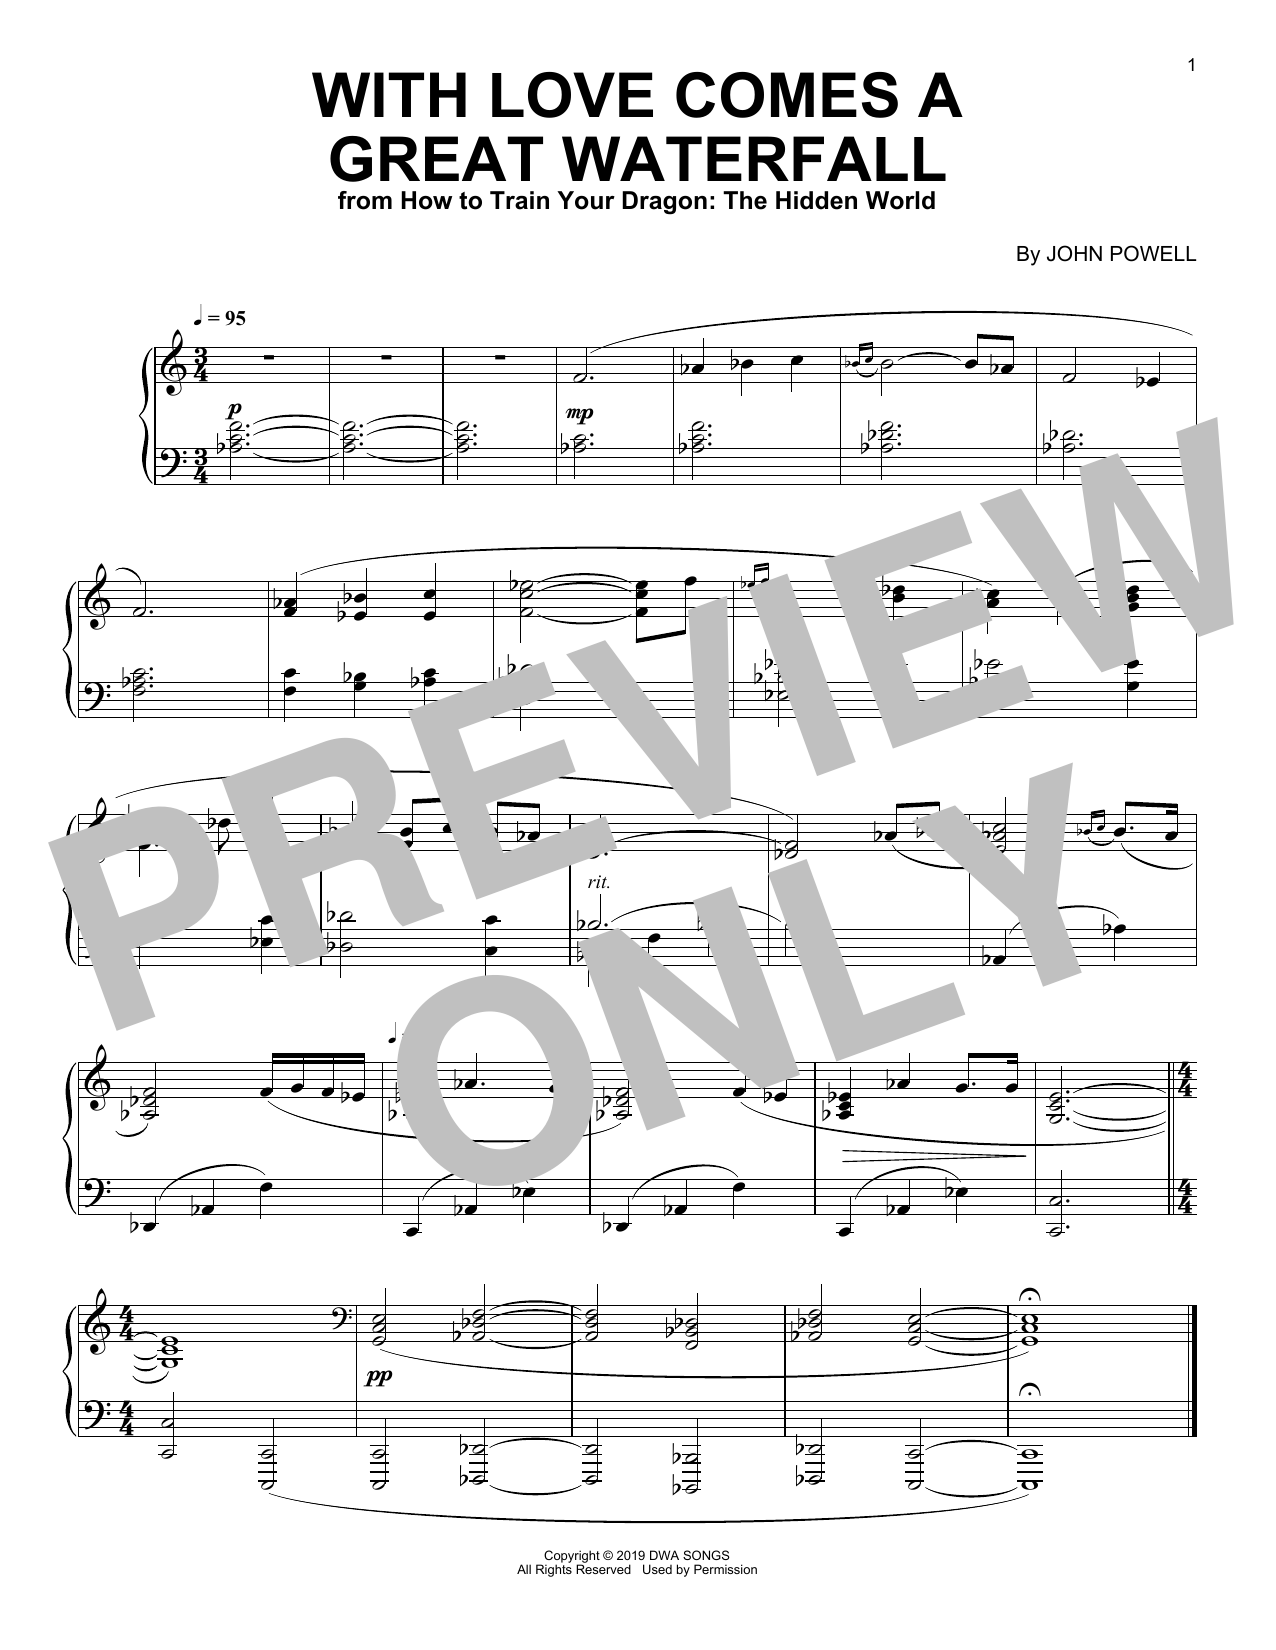 John Powell With Love Comes A Great Waterfall (from How to Train Your Dragon: The Hidden World) sheet music notes and chords. Download Printable PDF.